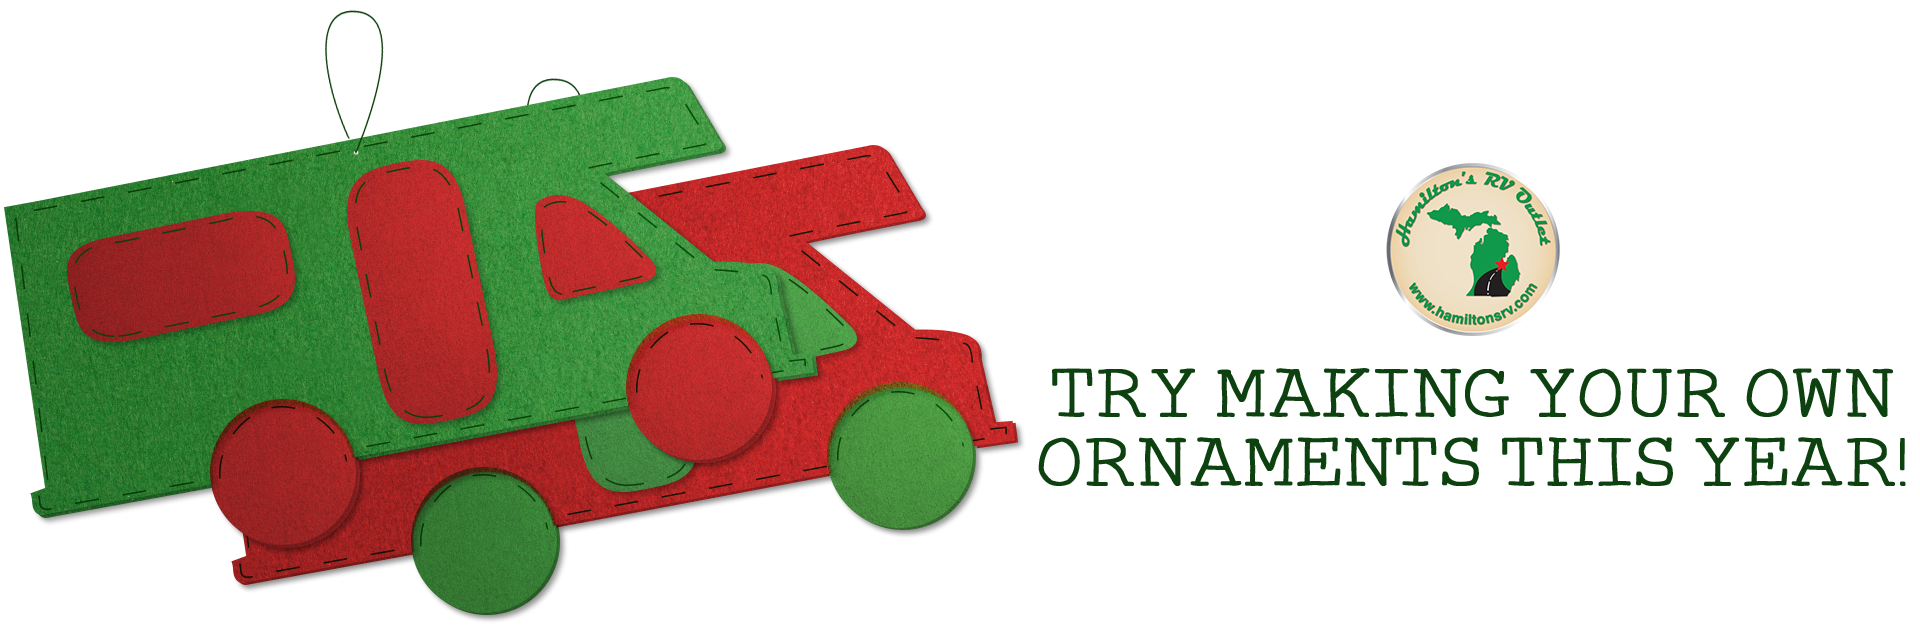 try making your own ornaments this year